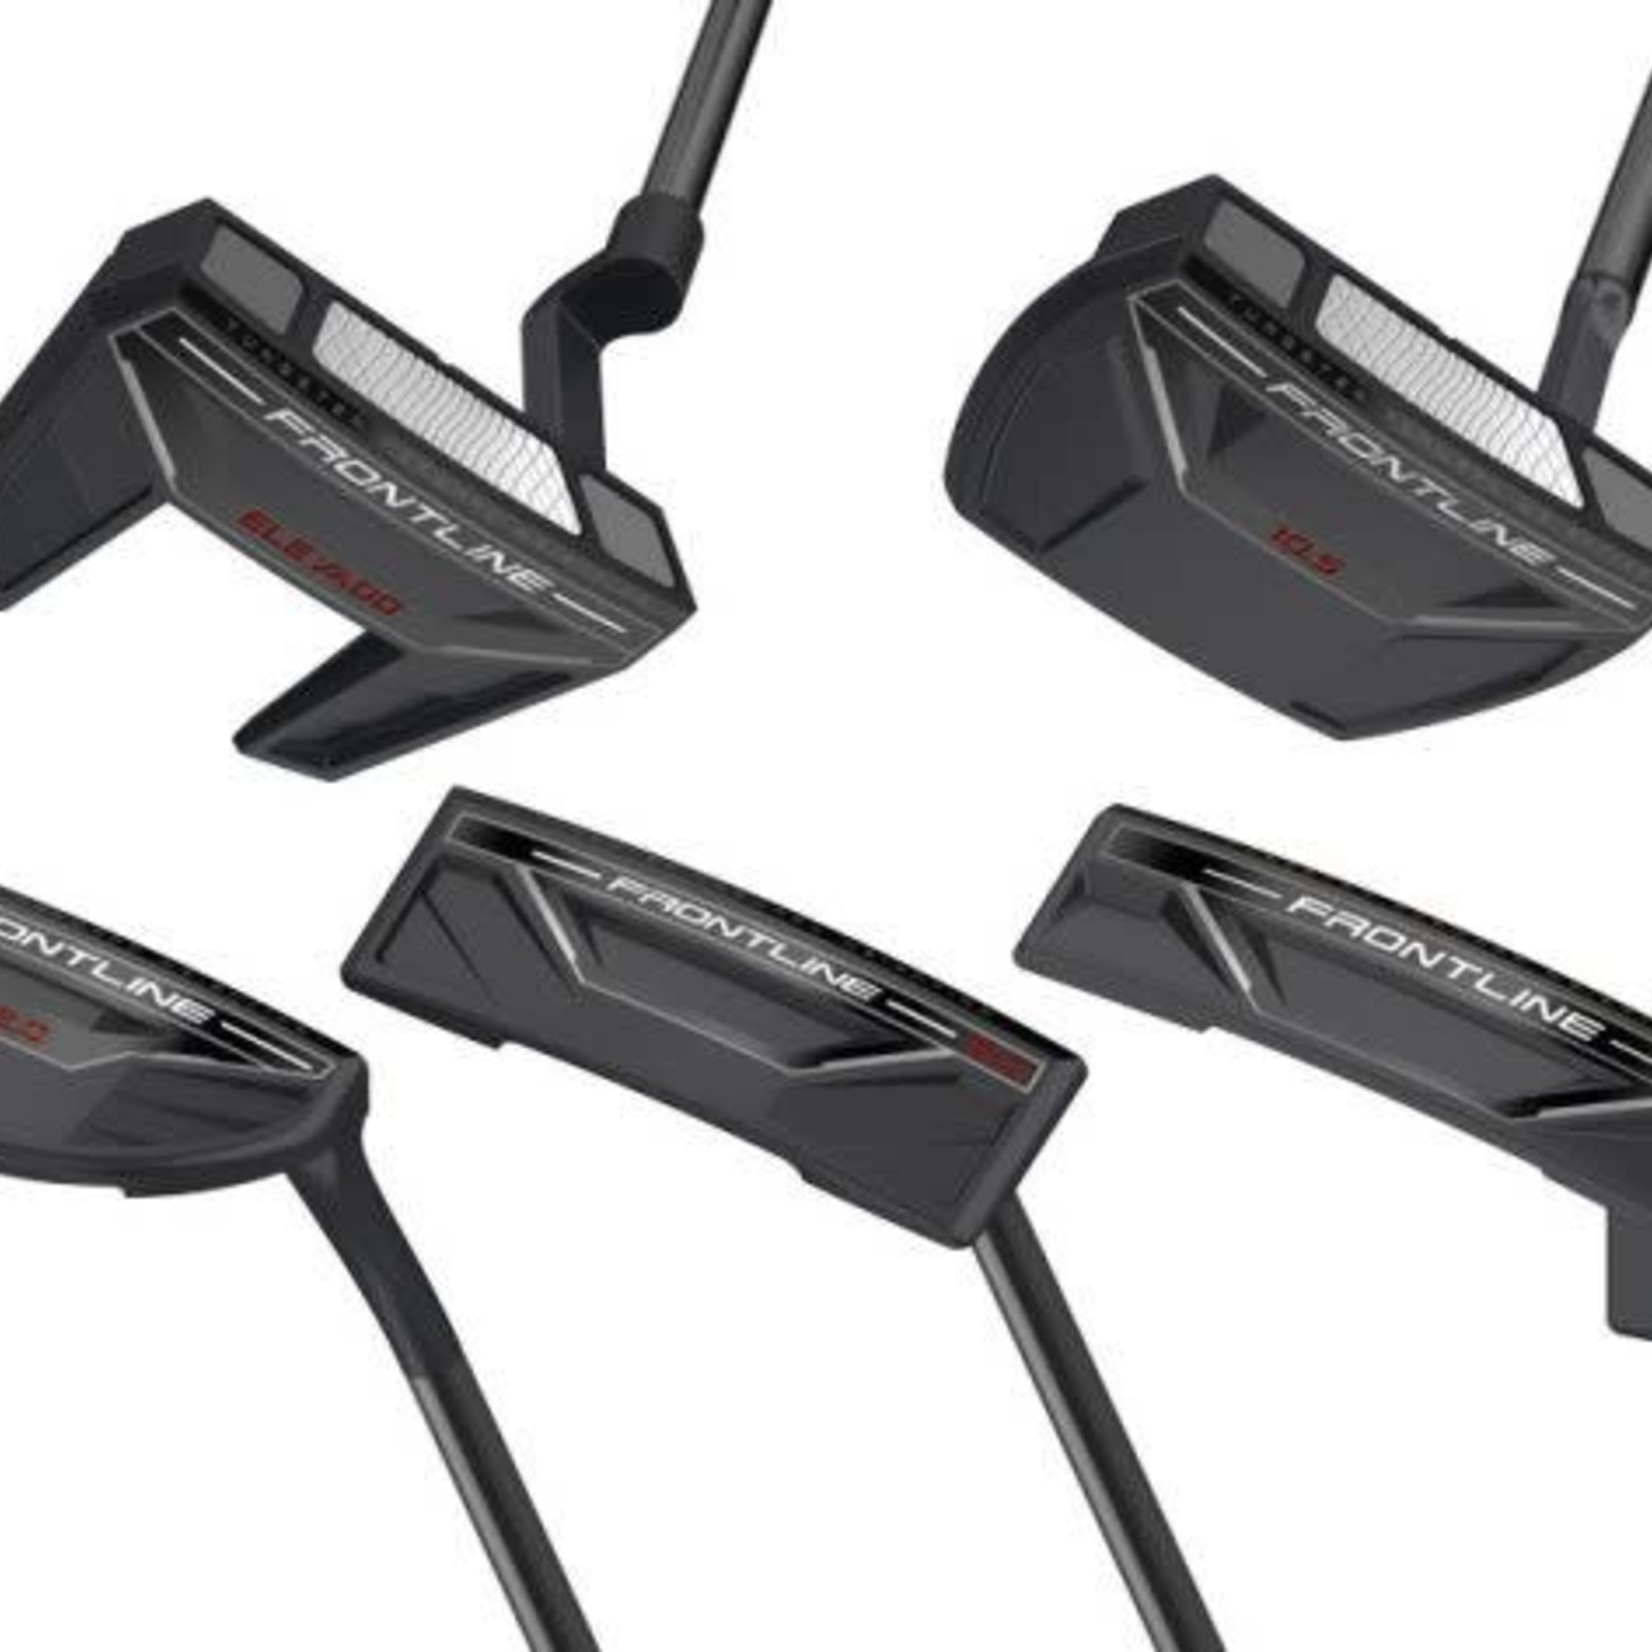 CLEVELAND FRONTLINE SERIES PUTTERS